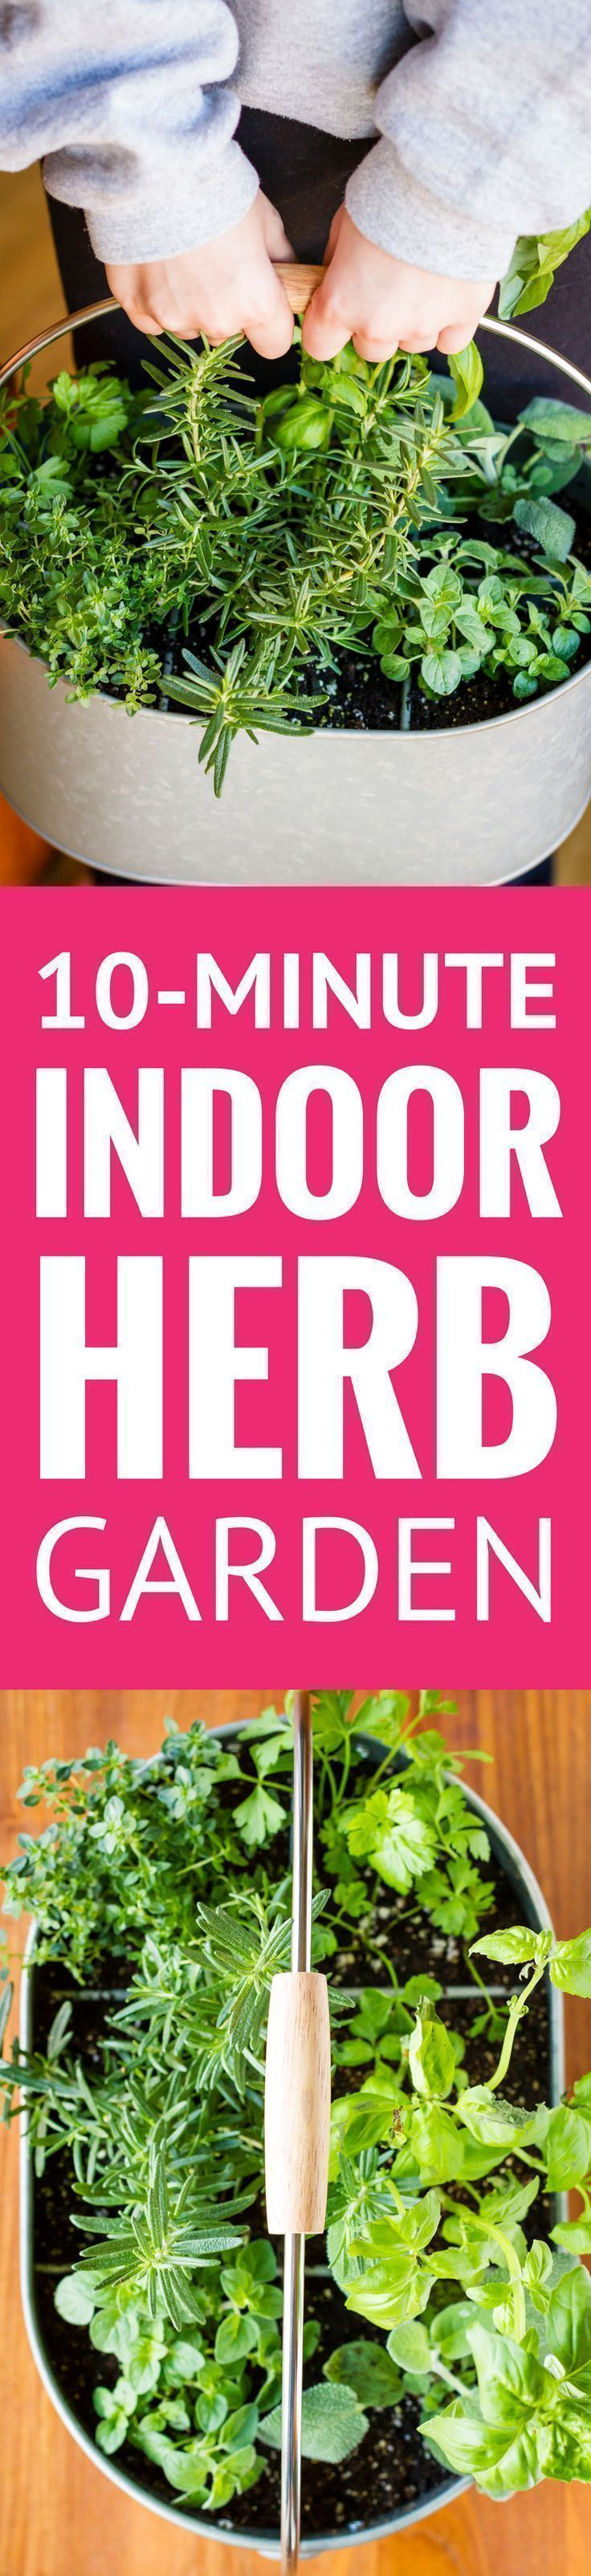 Easy Indoor Herb Garden -- I was an indoor container gardening failure, until I decided a different approach was in order. Find out how you can create this simple DIY indoor herb garden in under 10 minutes! | diy indoor herb garden | indoor herb garden ideas | indoor herb garden for beginners | indoor herb garden containers | find the tutorial on unsophisticook.com #herbgarden #indoorplants #containergardening #herbs #containergardeningforbeginners #containergardeningdiy #diygardening